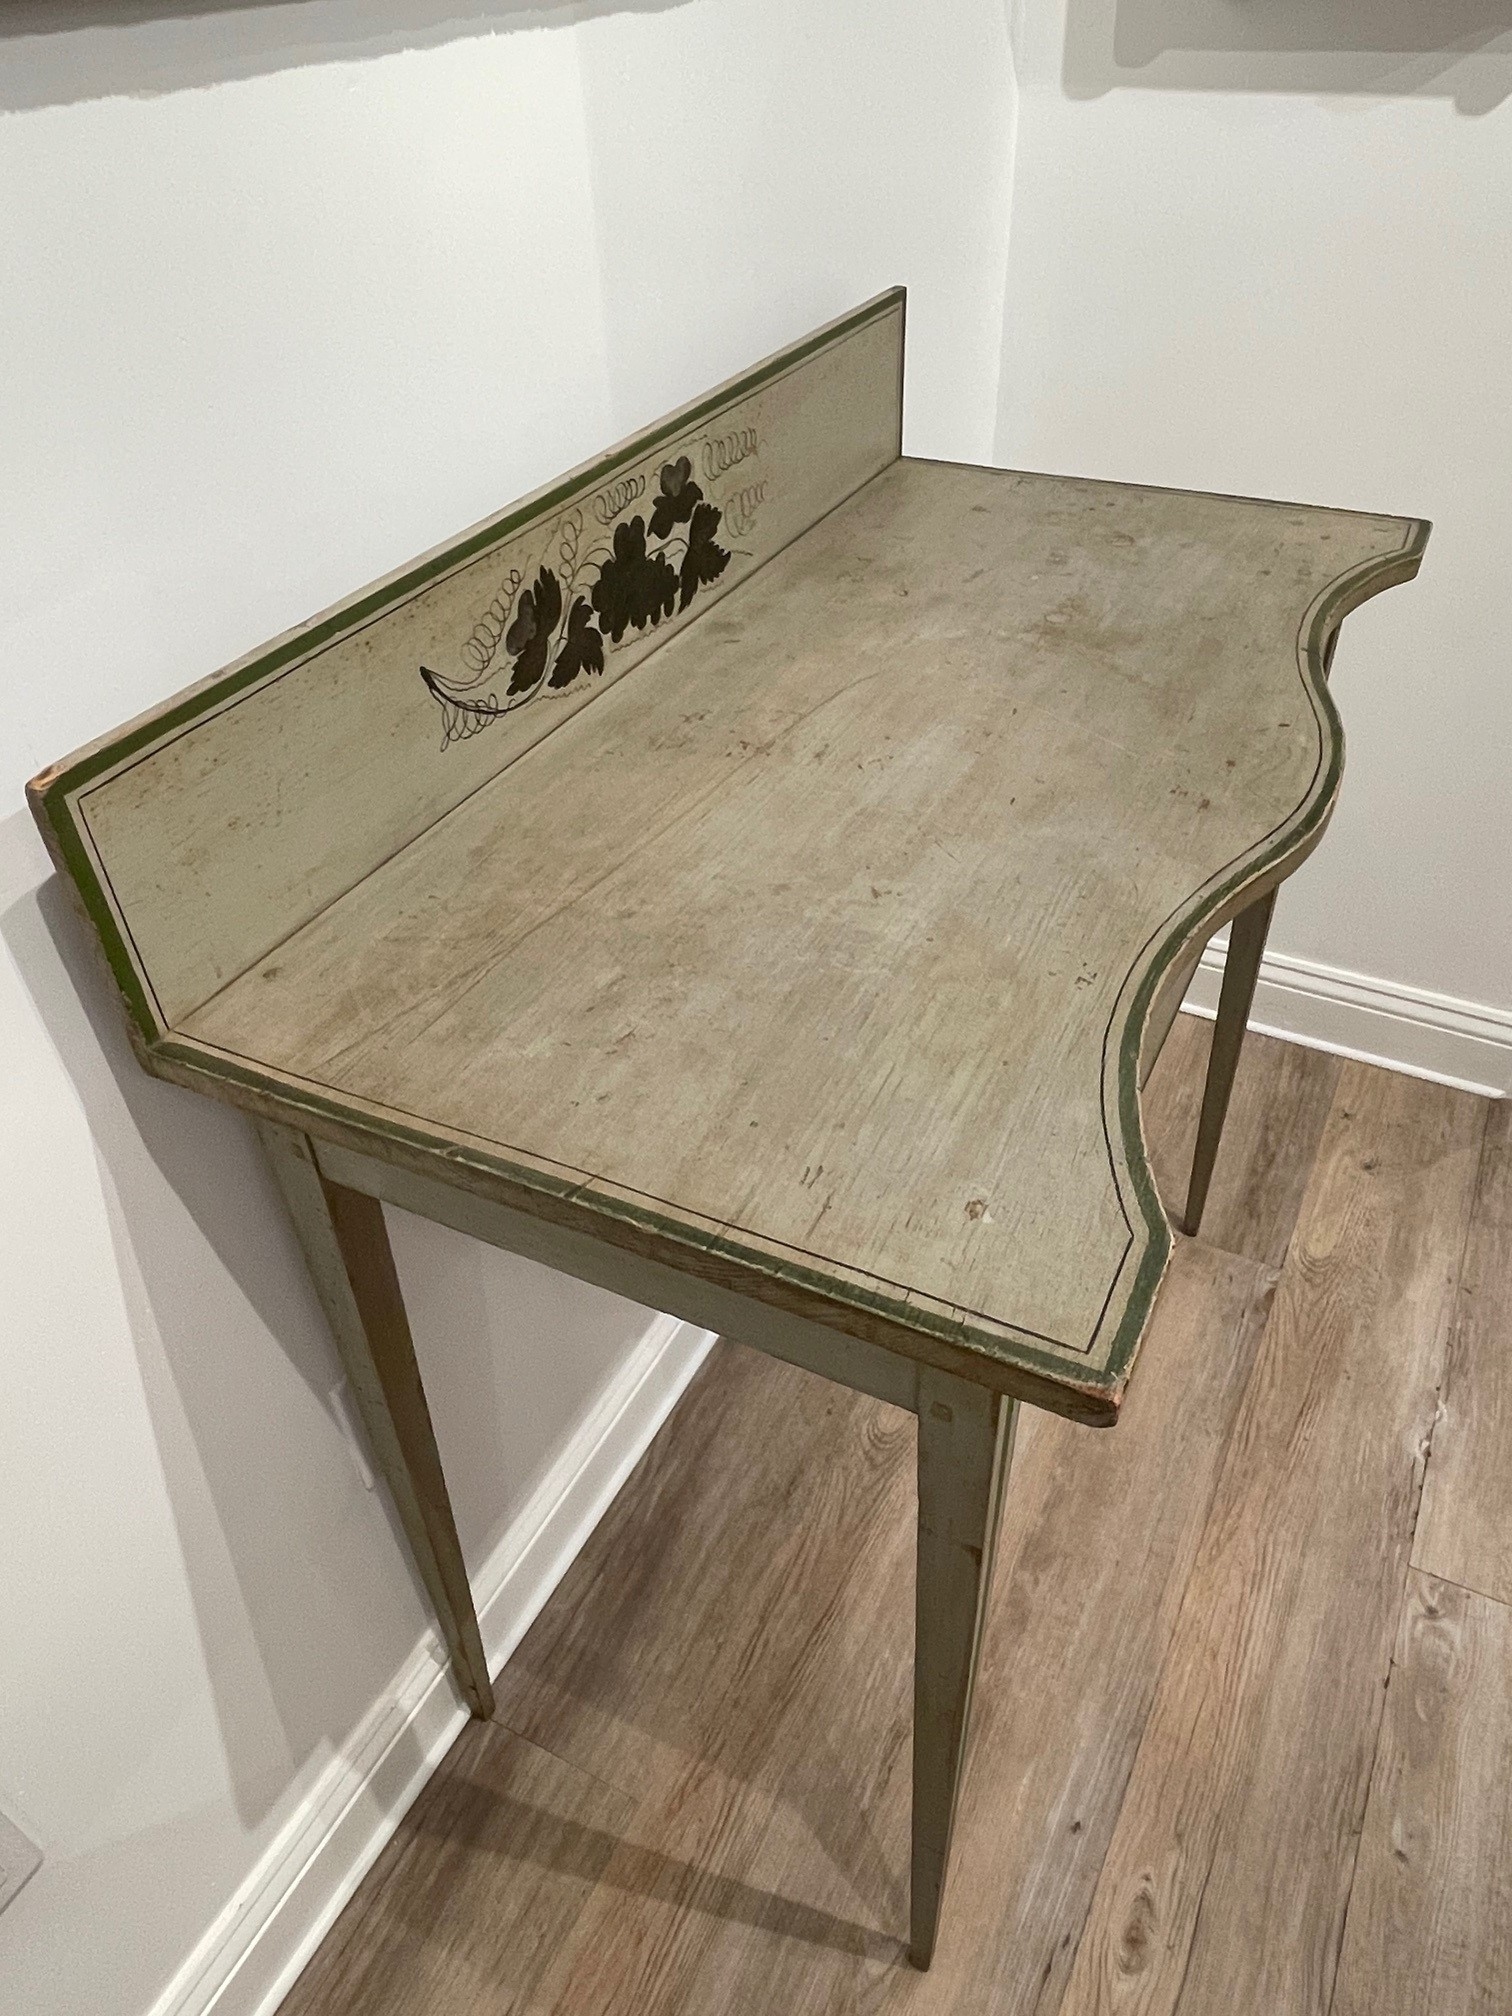 american folk painted serving table rel=